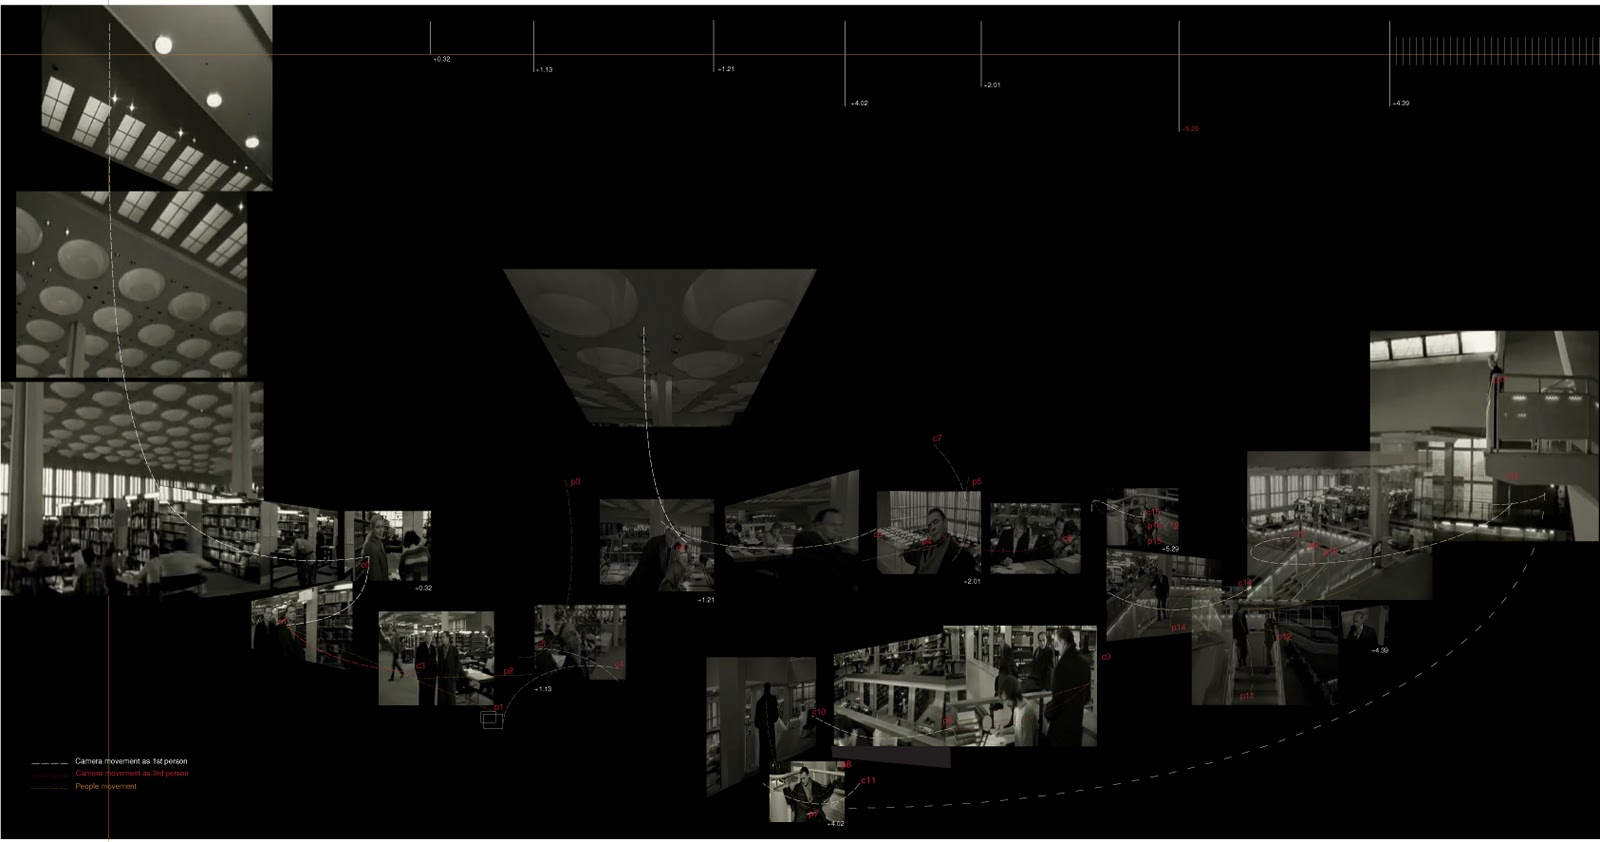 UNIT 15 DIPLOMA IN ARCHITECTURE: Wings Of Desire Chronogram